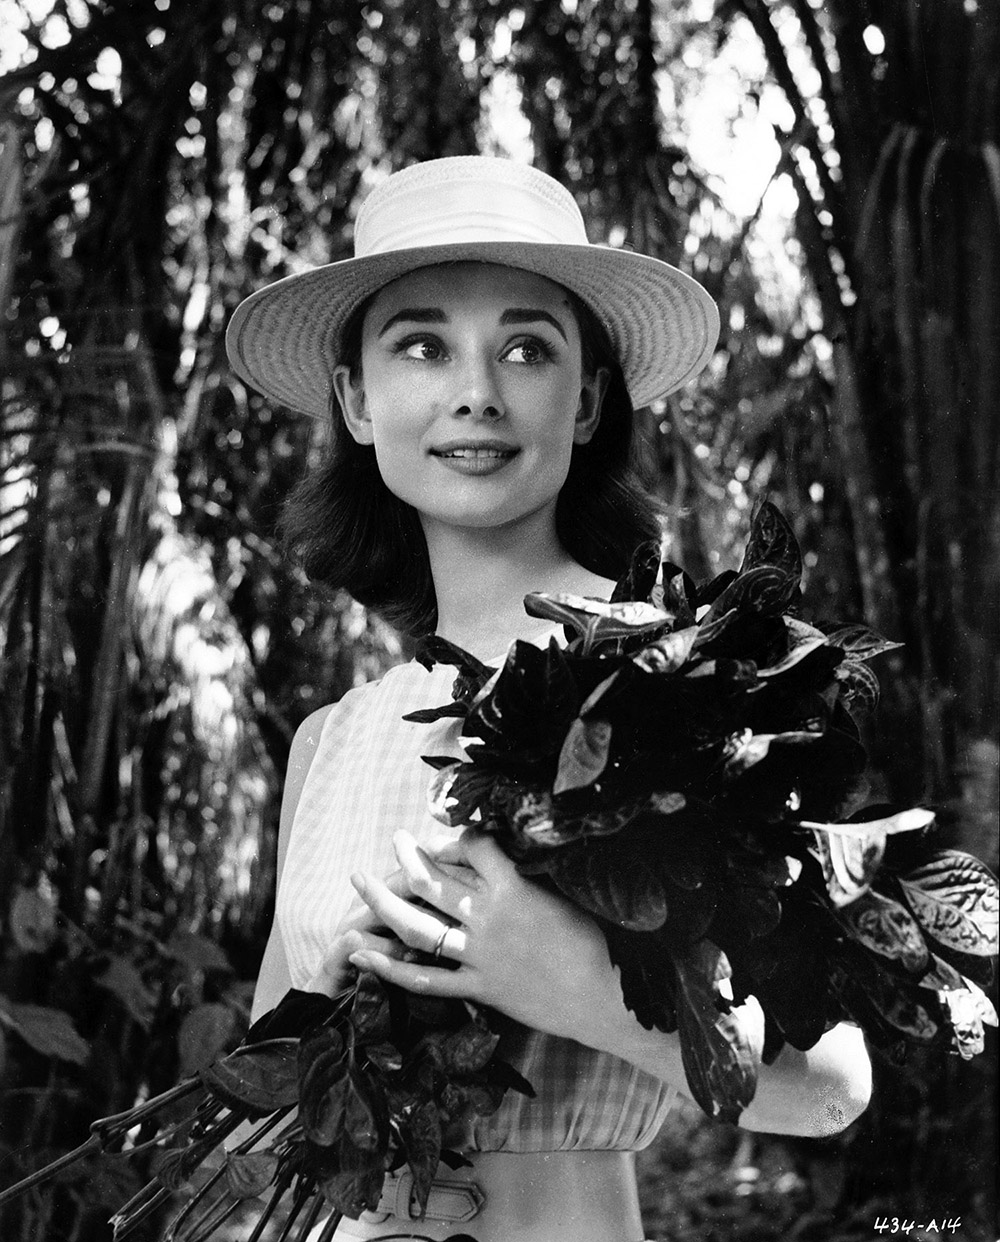 The Nun's Story - Audrey Hepburn with flowers